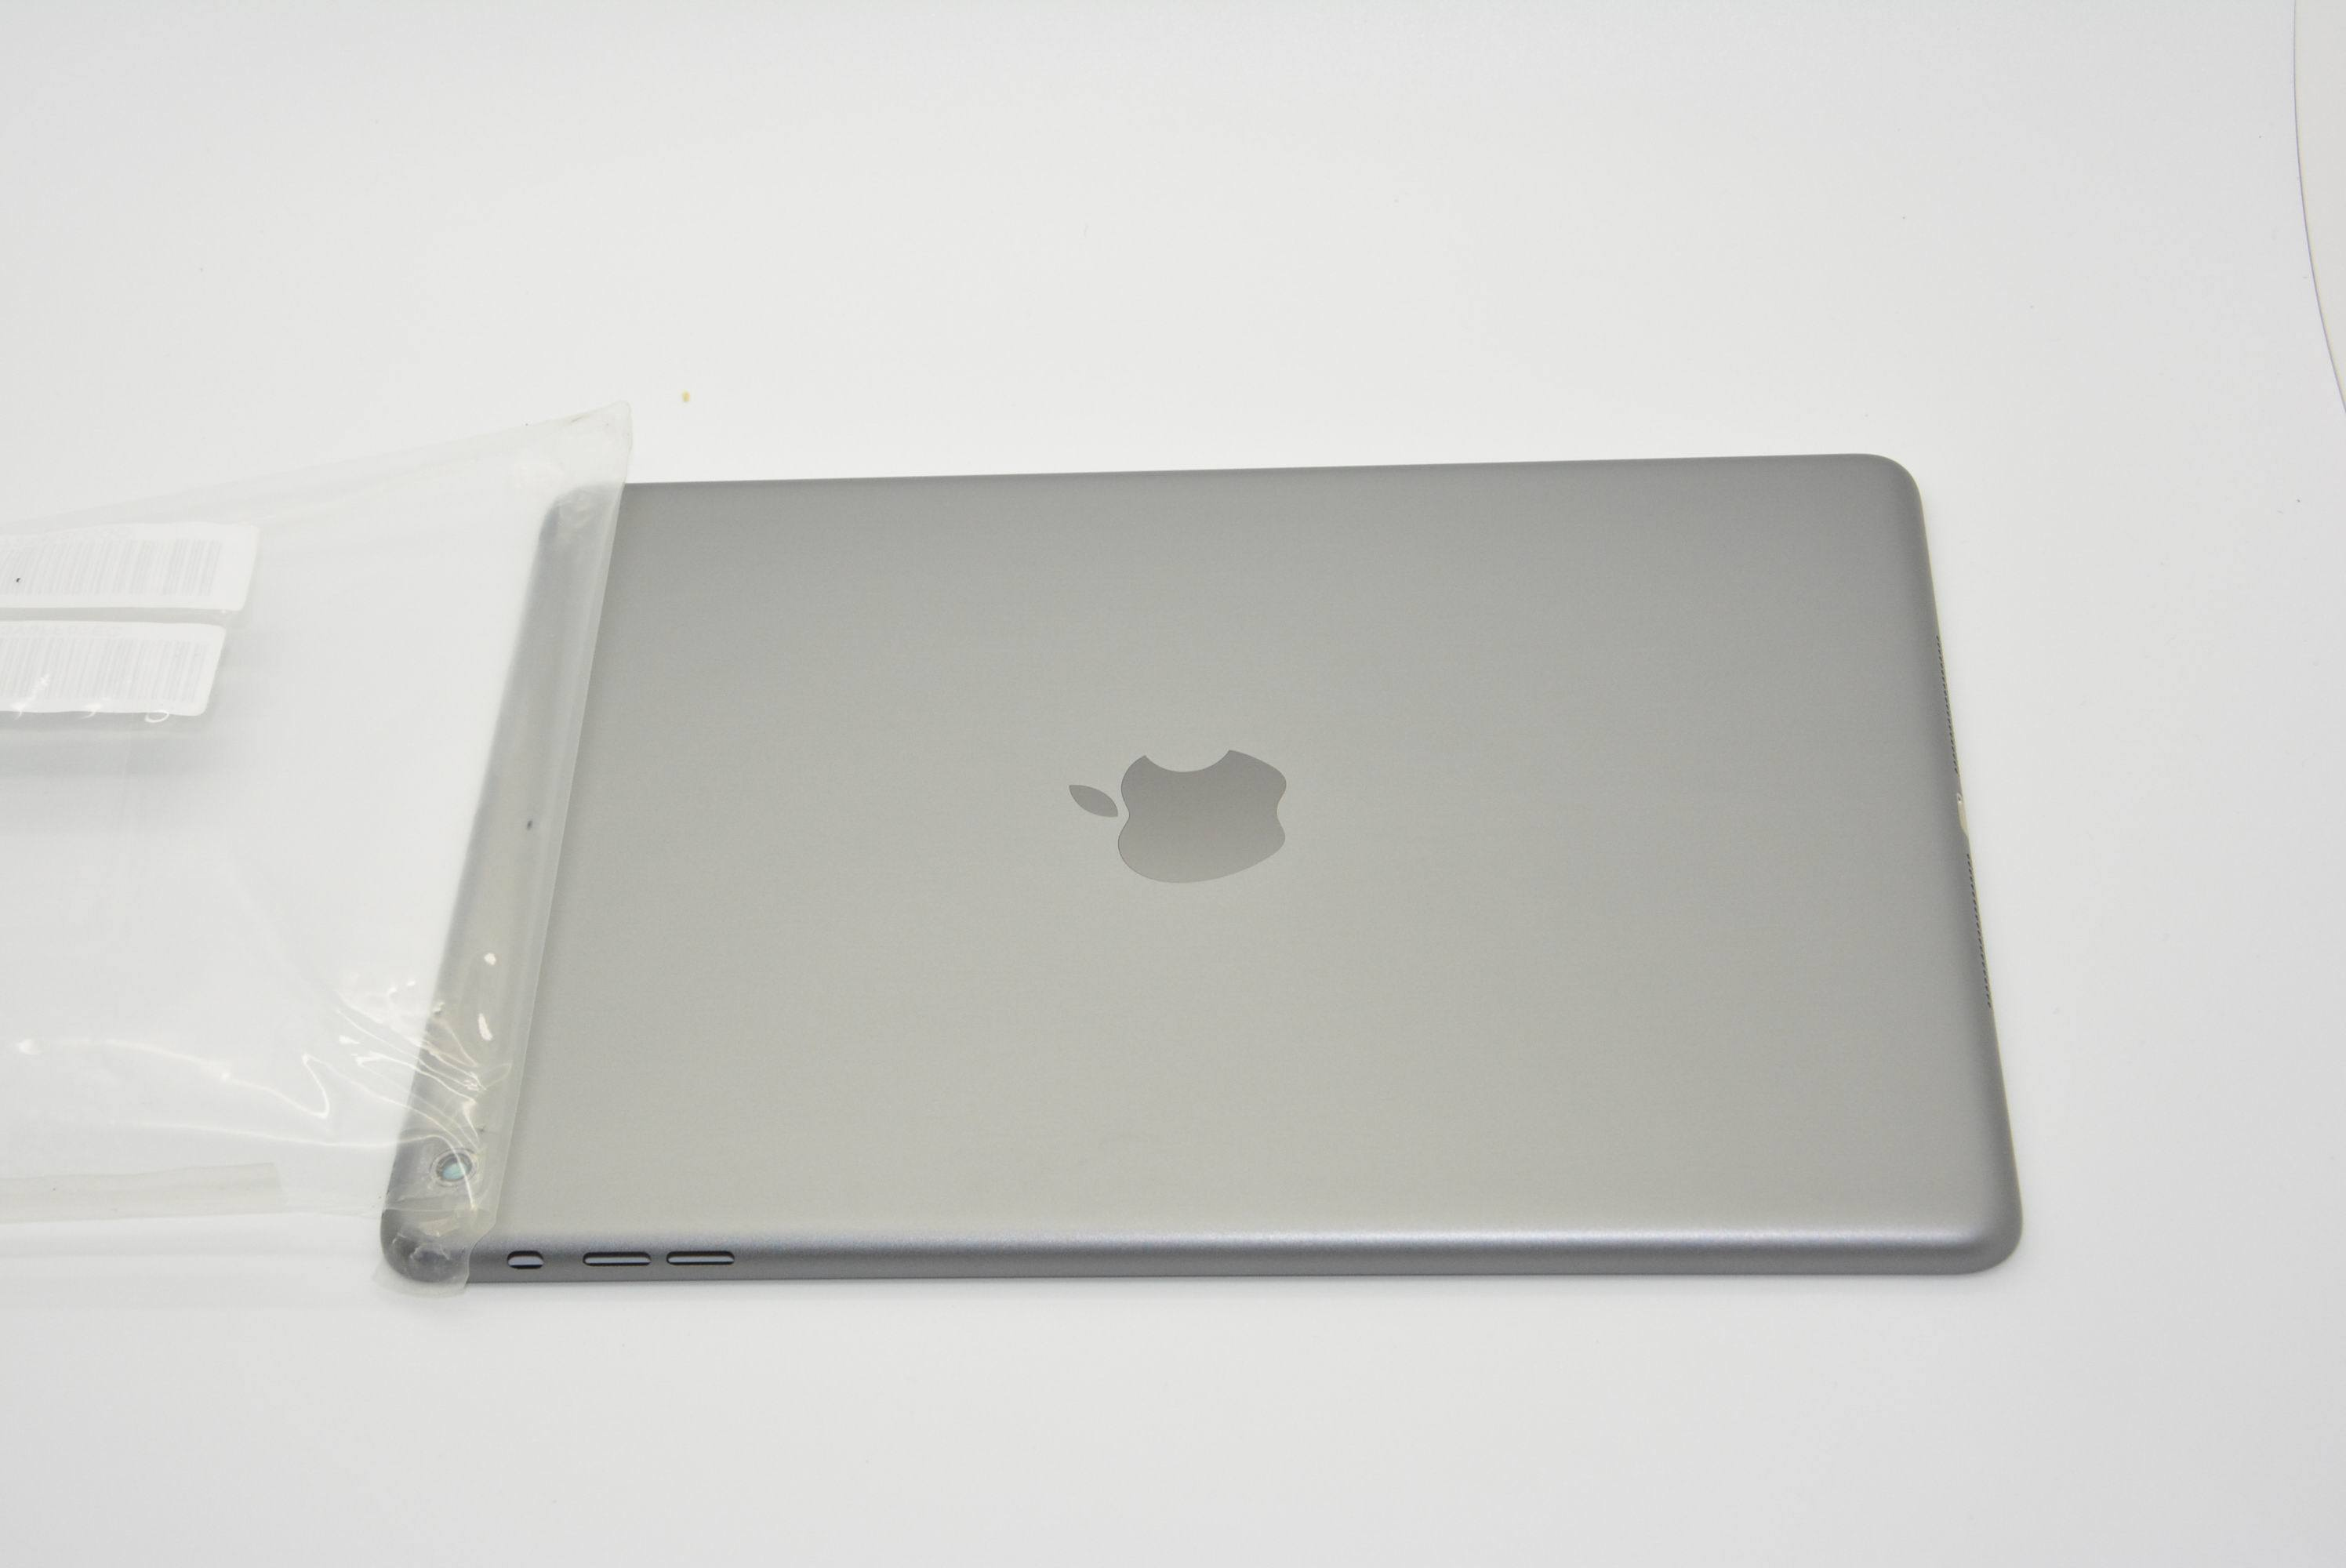 First Look At Apple's Anticipated Space Gray Fifth-Generation iPad